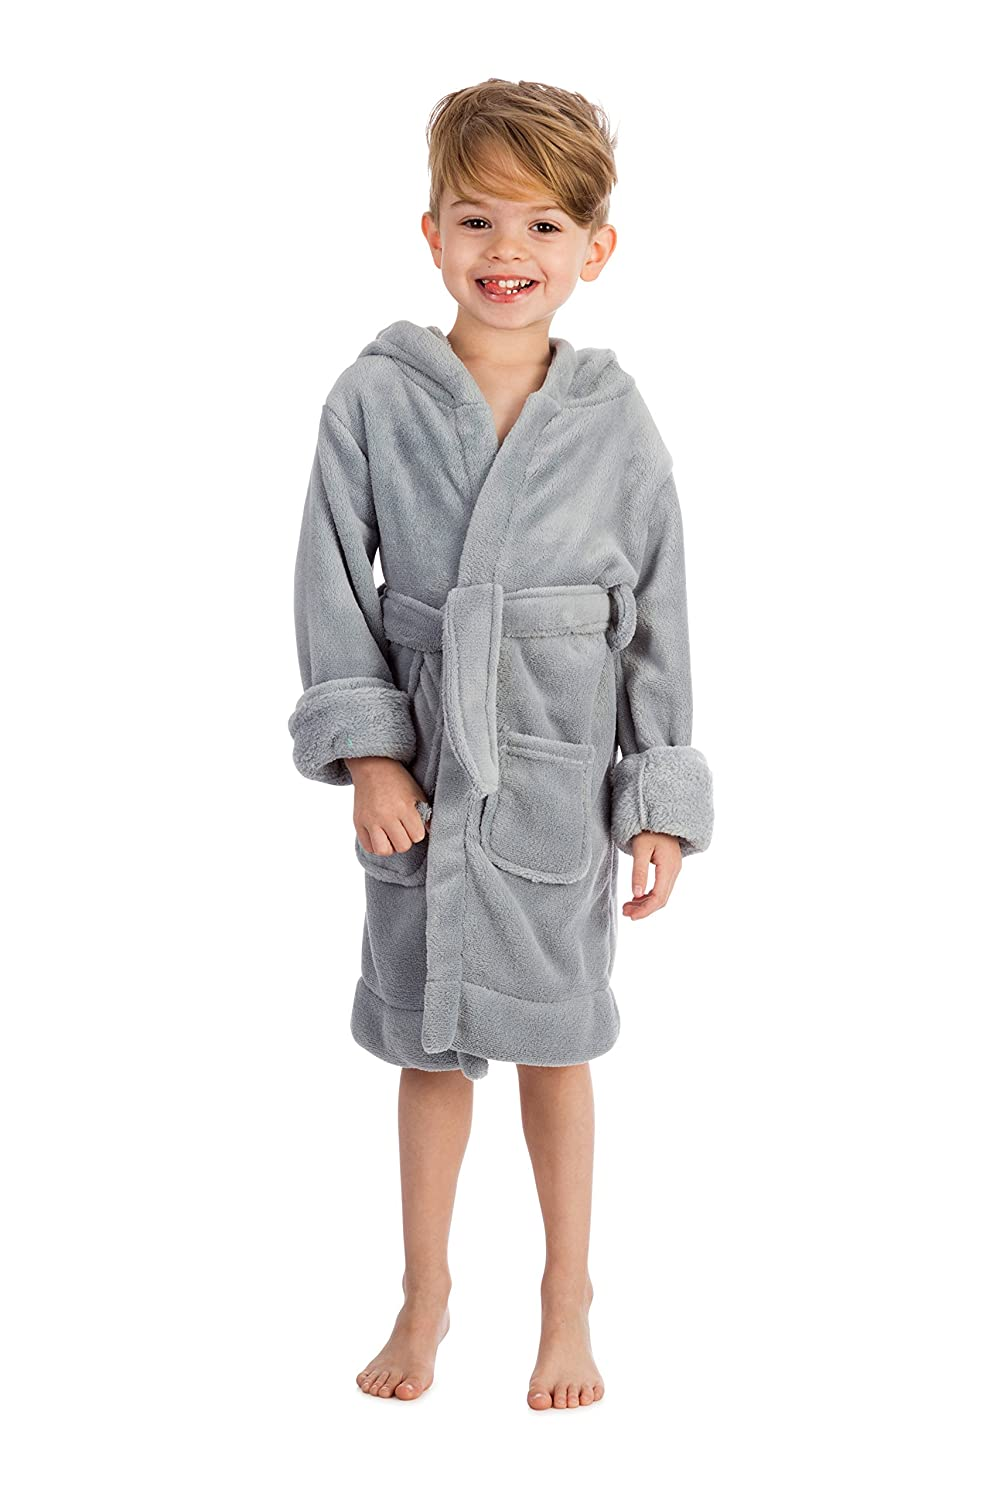 Elowel Boys Girls Hooded Childrens Fleece Sleep Robe Size 2 Toddler -14Y